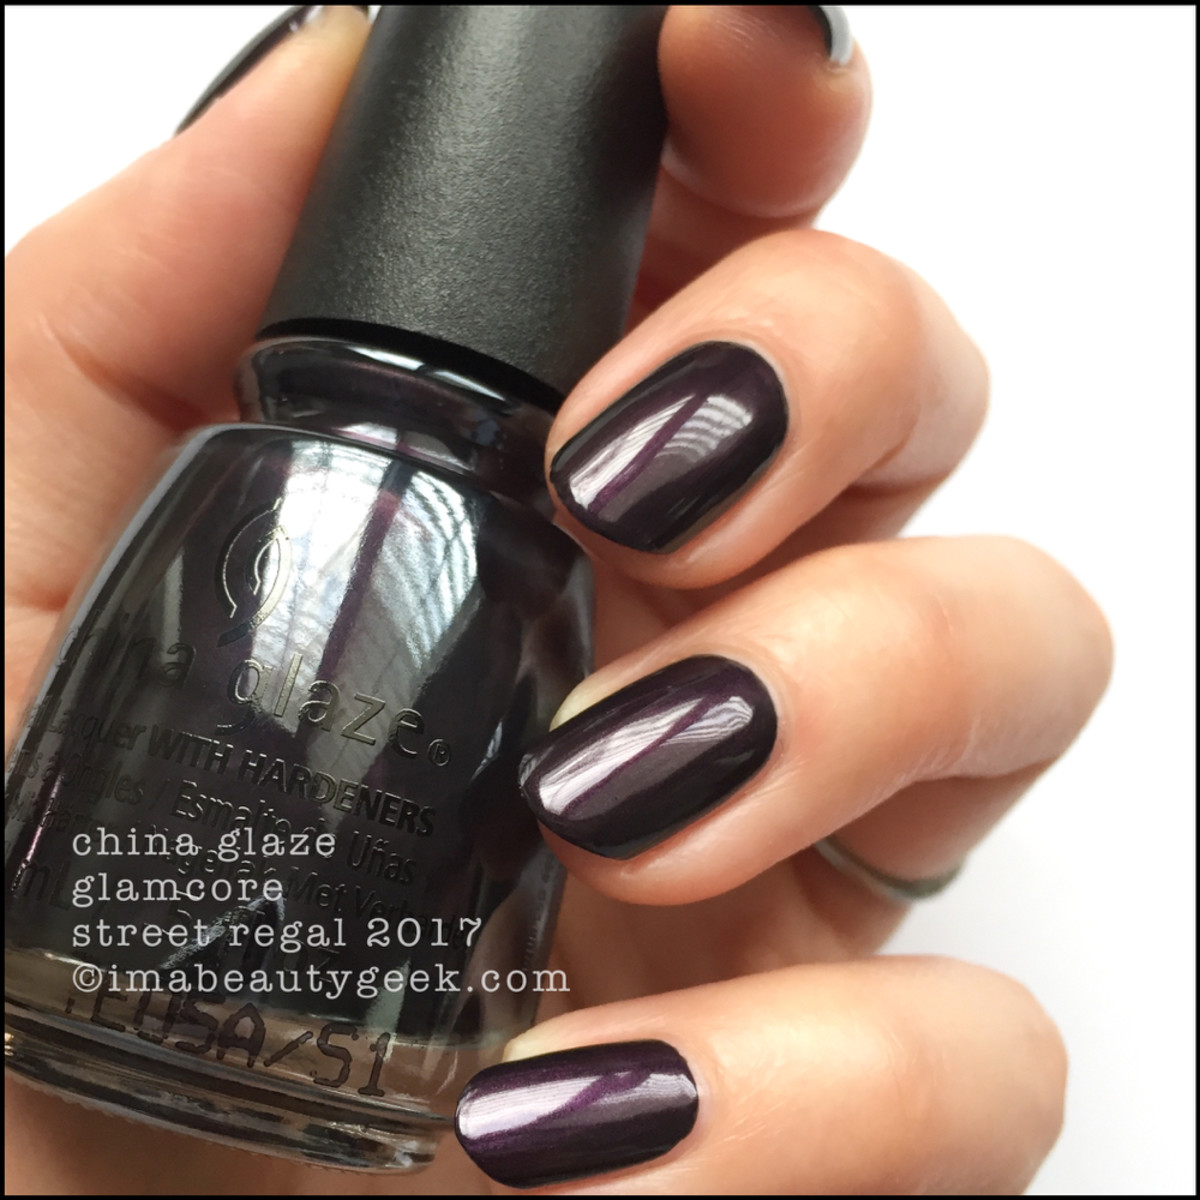 China Glaze Glamcore - Street Regal Collection Fall 2017